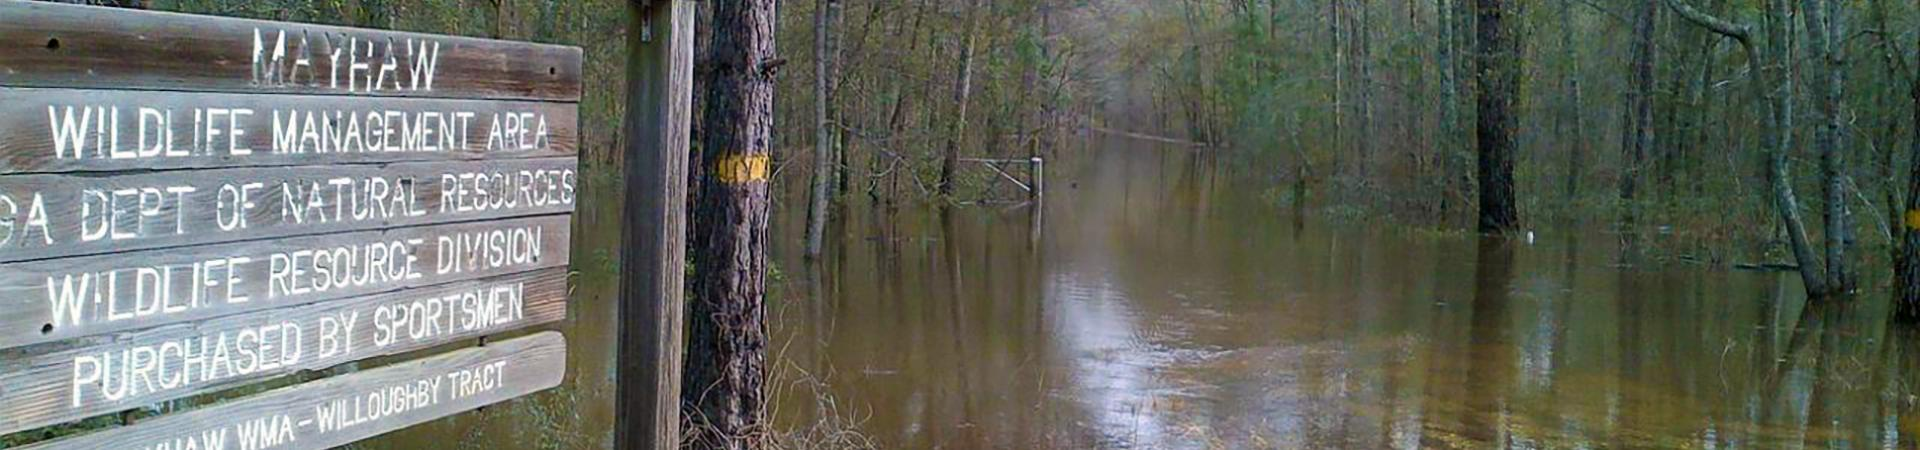 Mayhaw Sign by Water